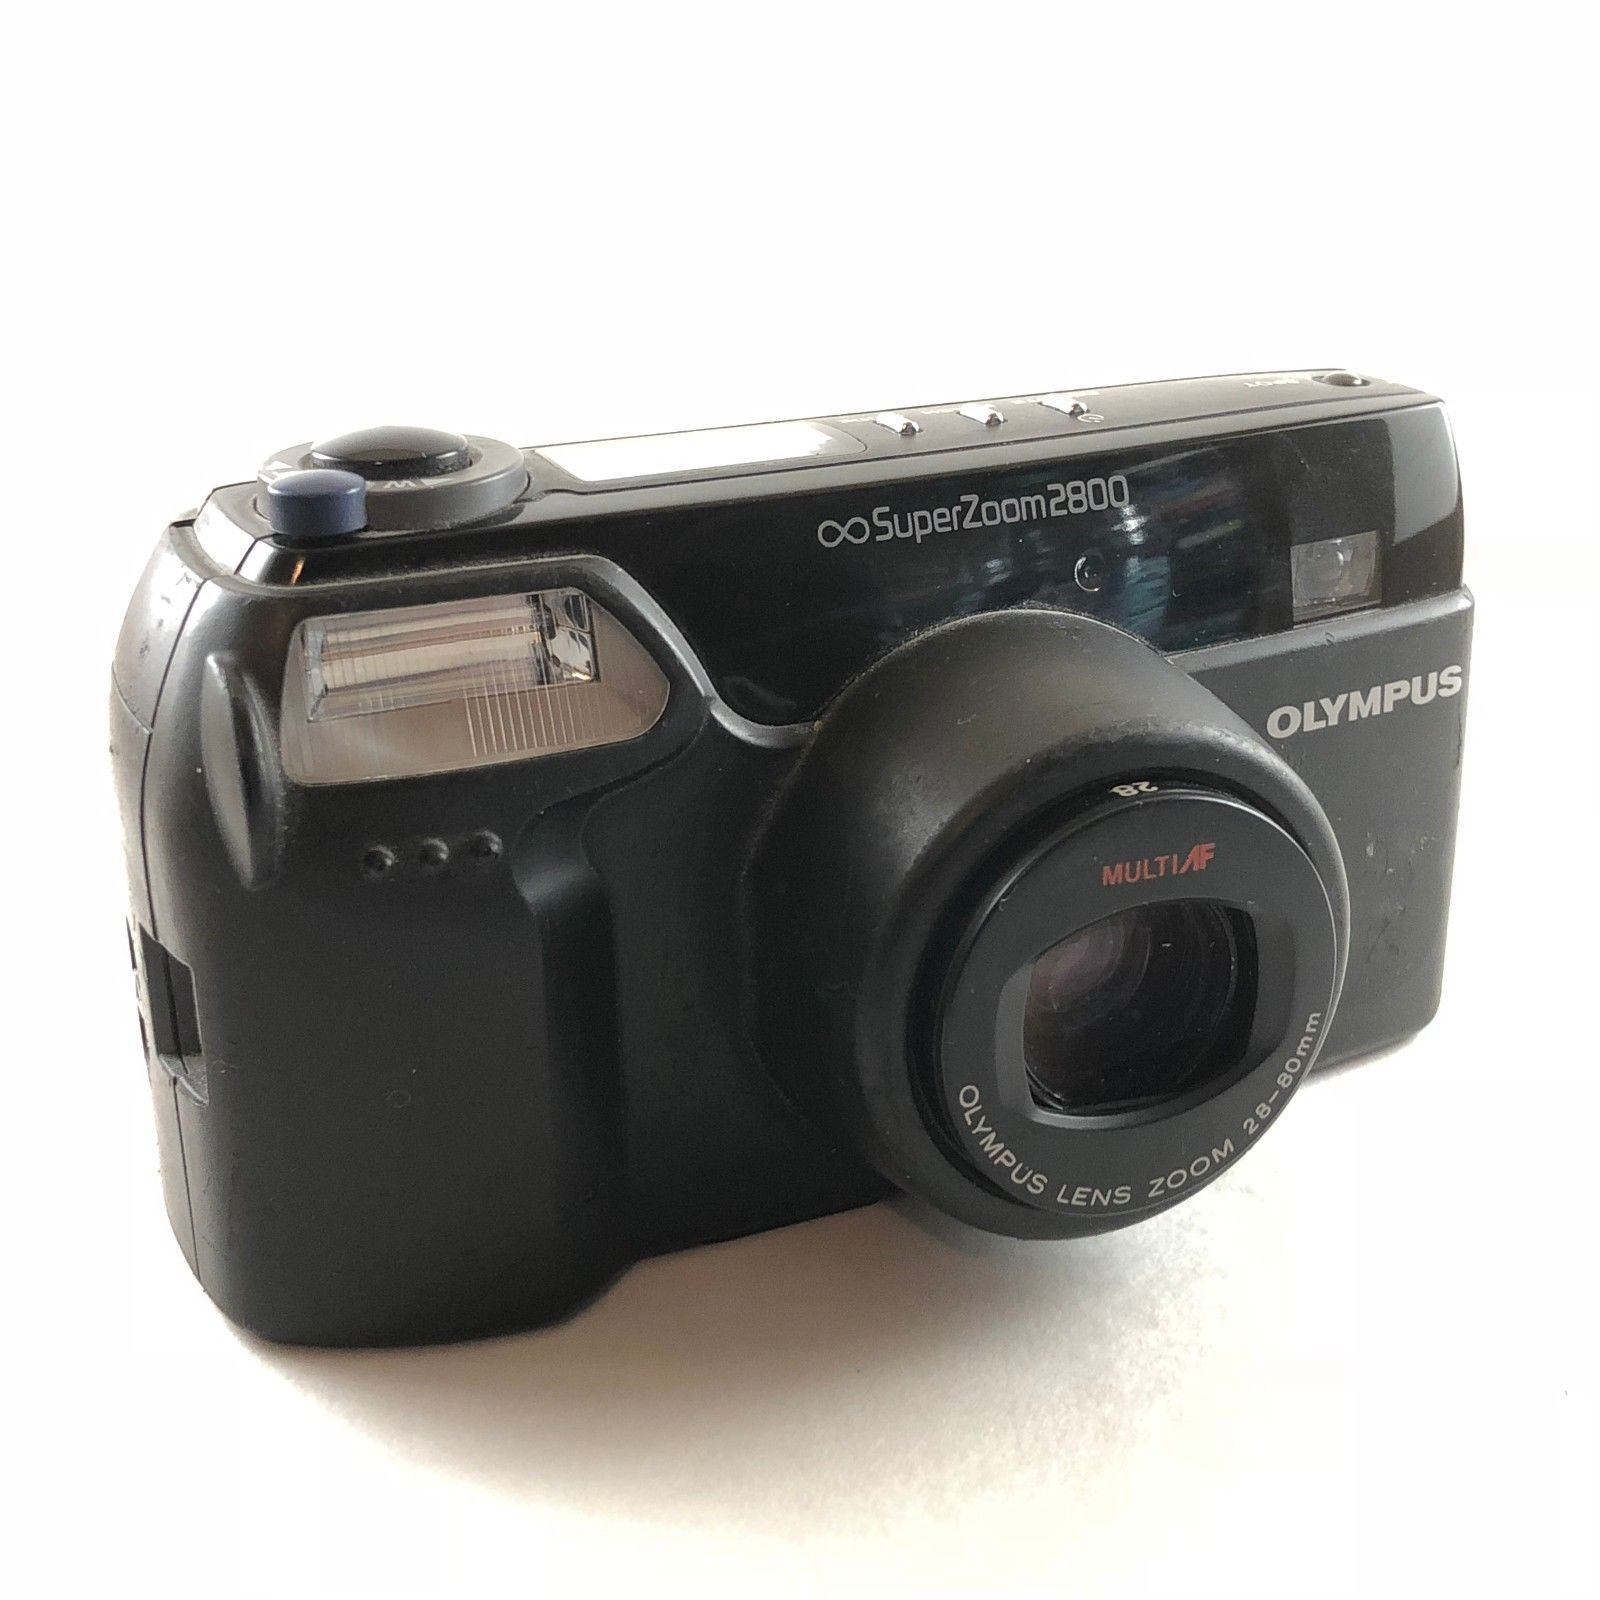 Olympus Superzoom 2800 28-80mm Film 35mm Camera Point Shoot Made in Japan